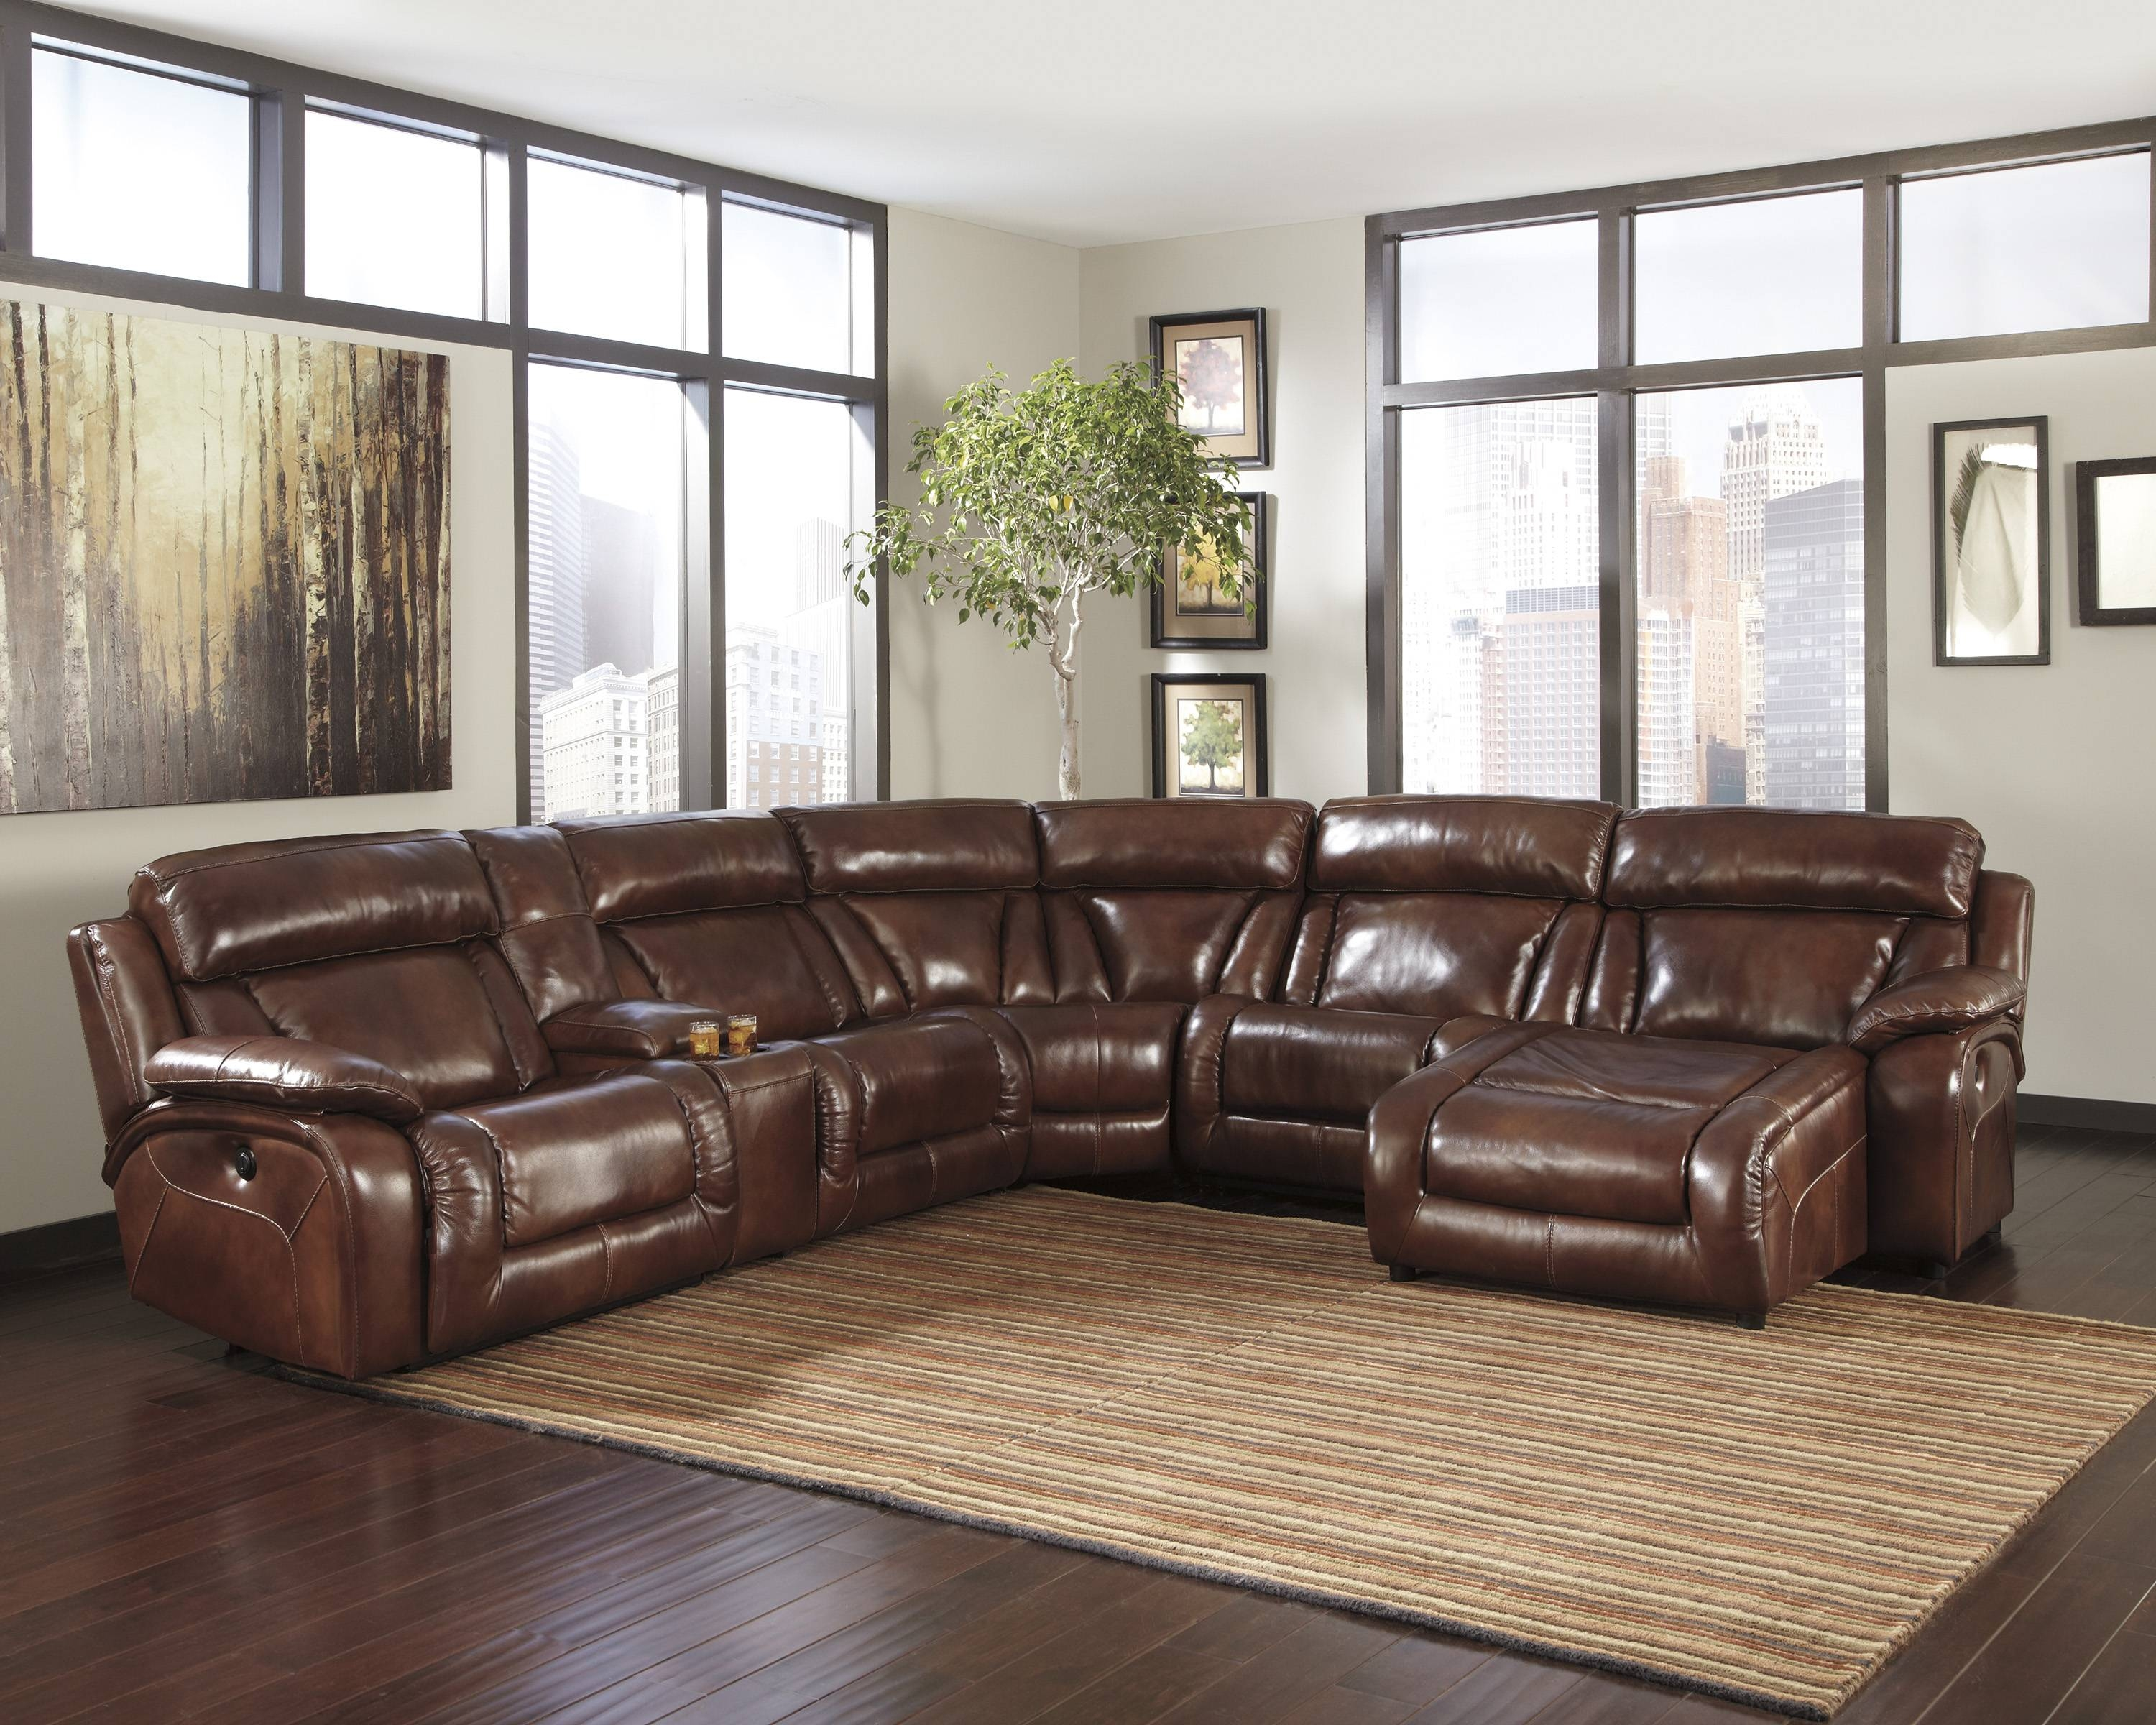 Amusing Small Reclining Sectional Sofas 45 About Remodel Petite Throughout Petite  Sectional Sofas (Image 1